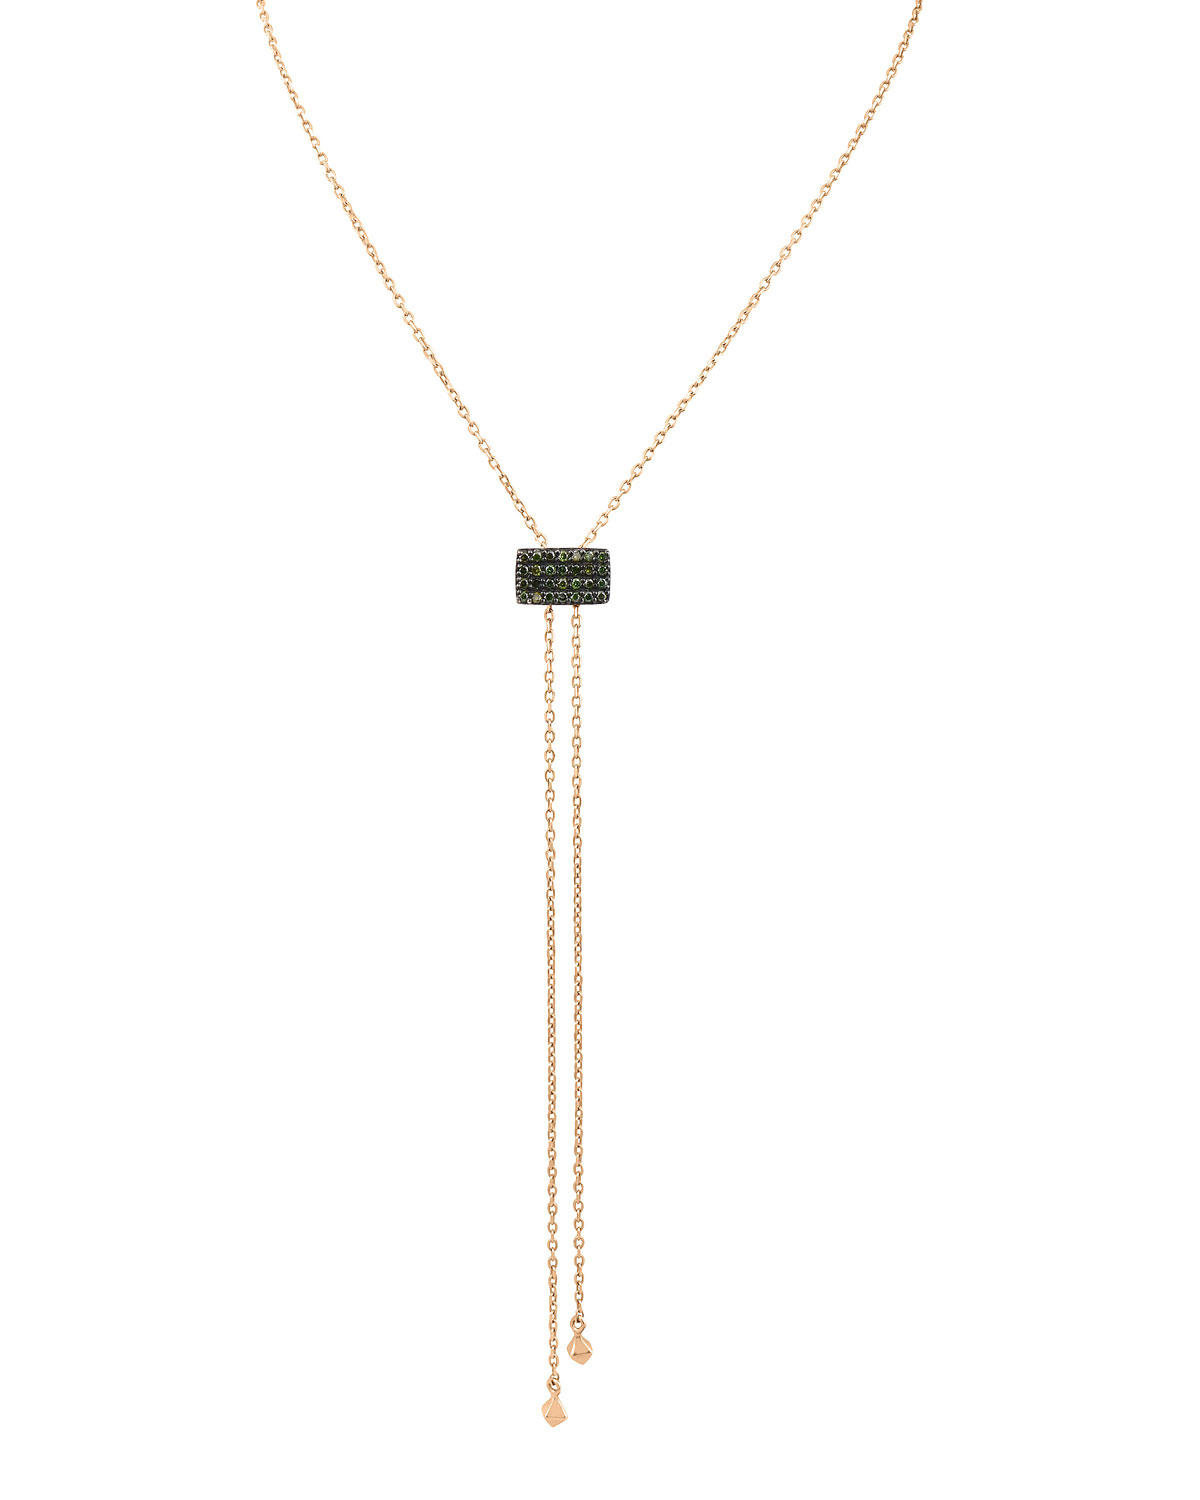 STEVIE WREN 14K ROSE GOLD GEOMETRIC LARIAT NECKLACE WITH GREEN DIAMONDS